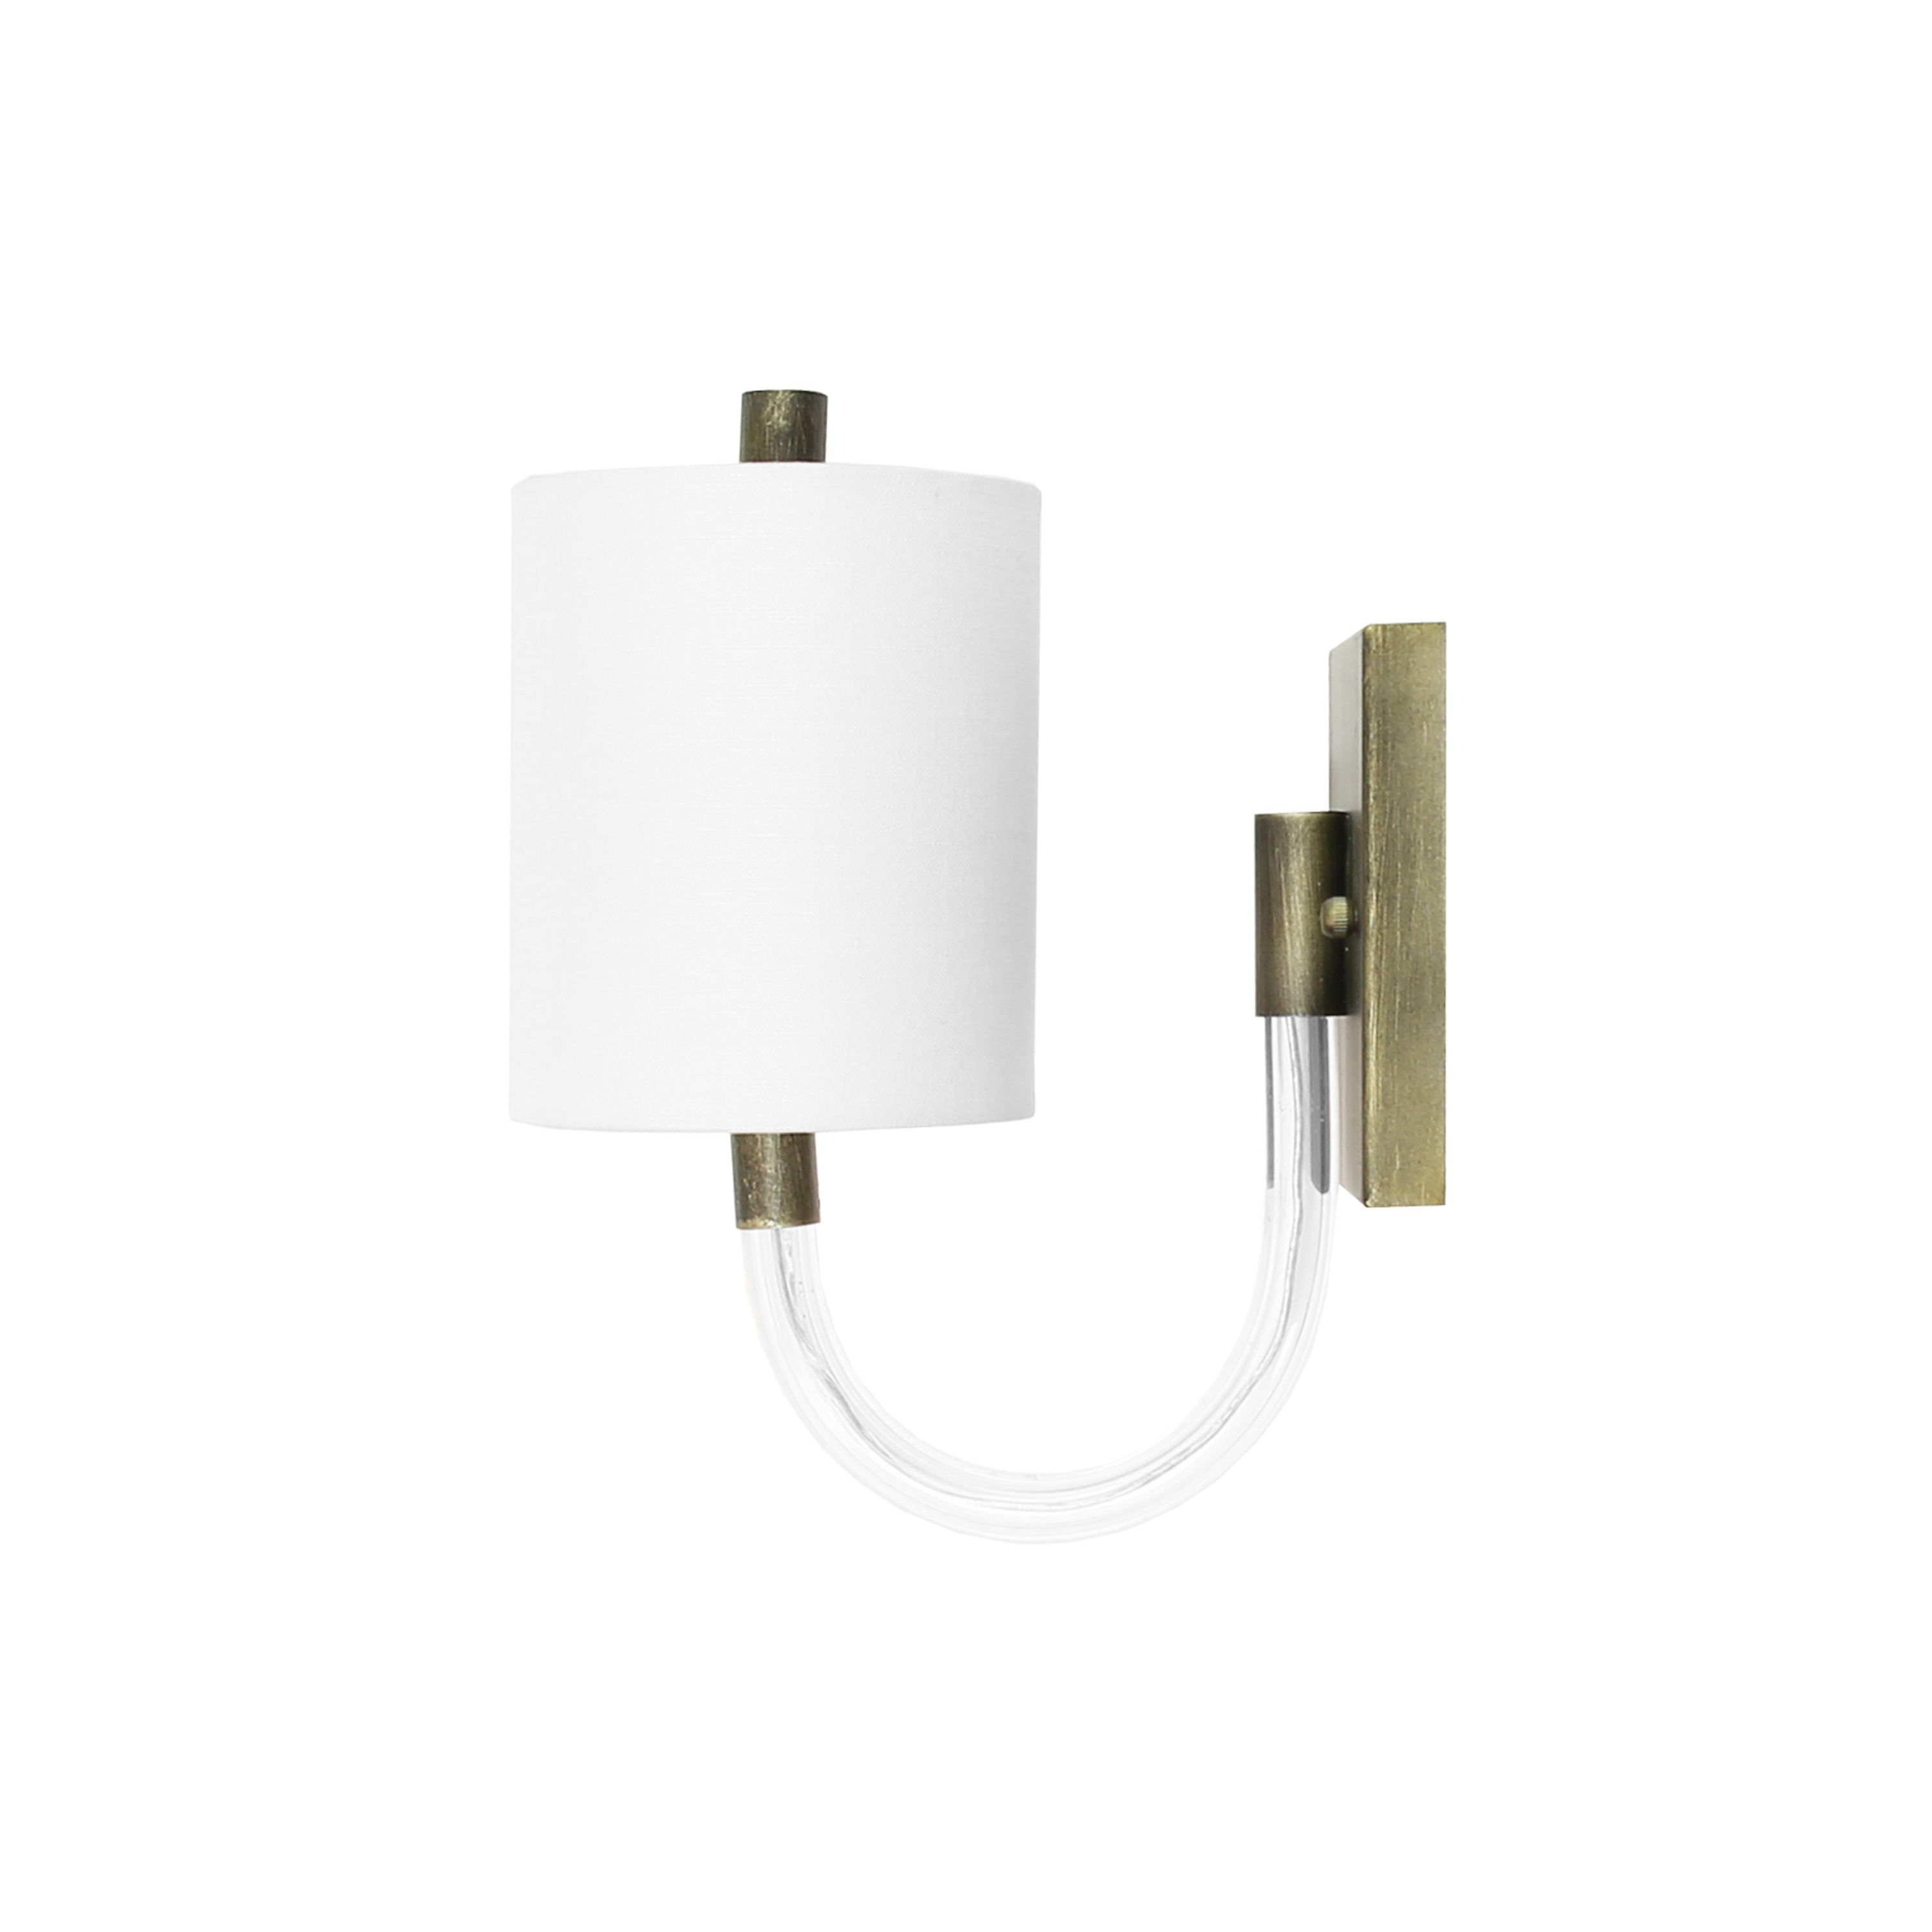 Sconce with Acrylic Neck & White Shade in Bronze